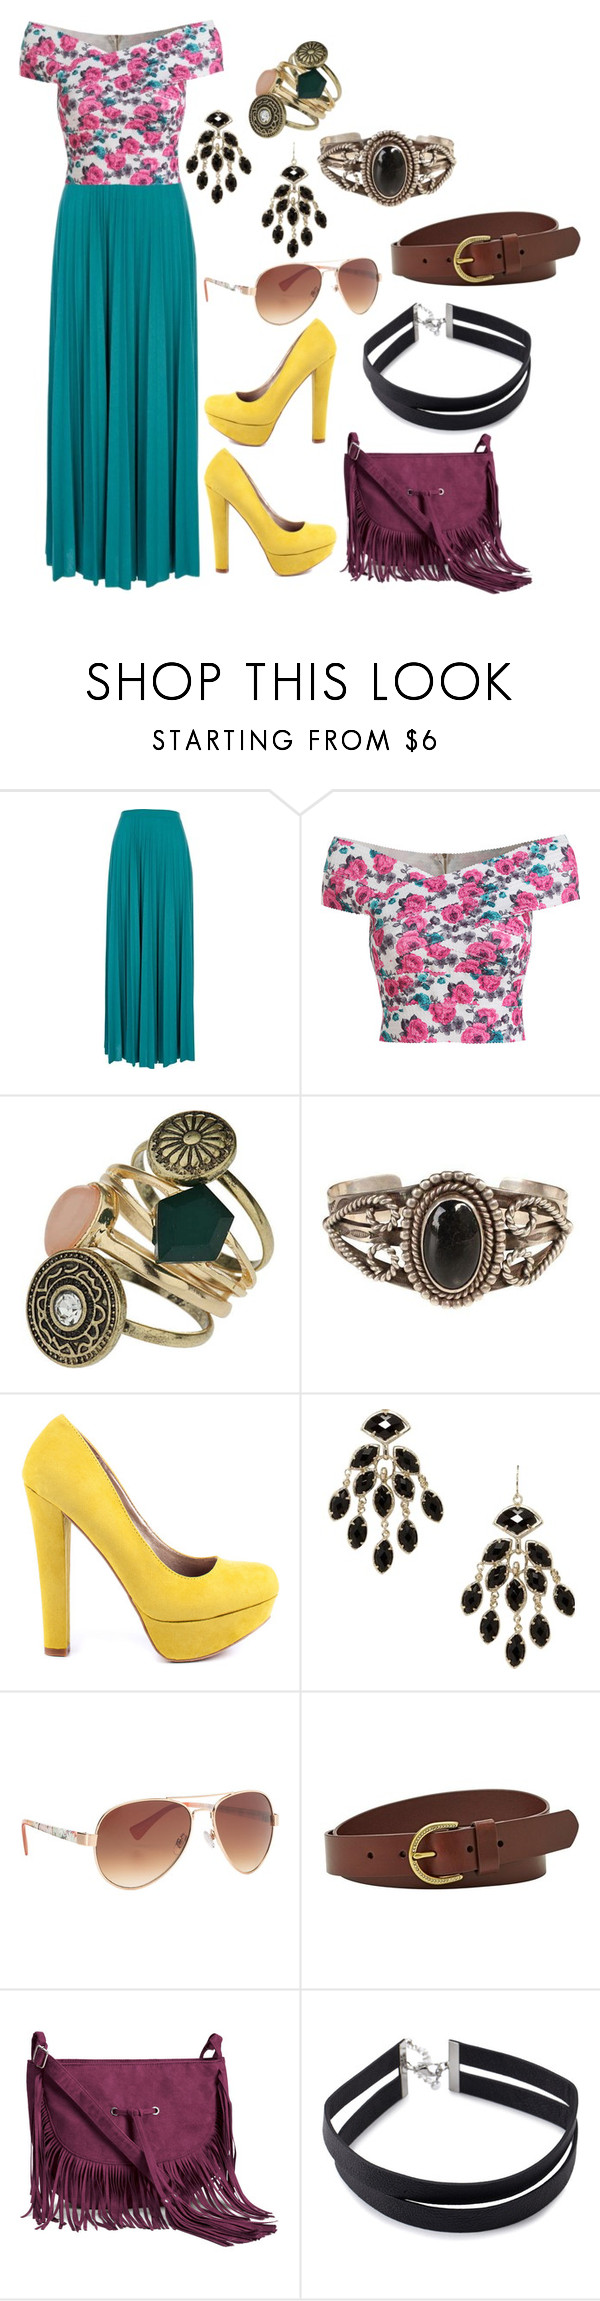 Mix & Match: Summer Outfit #94 by mscody on Polyvore featuring River Island, Veda Soul, H&M, Forever 21, Dorothy Perkins, Kendra Scott, FOSSIL, maurices, Summer and summerstyle